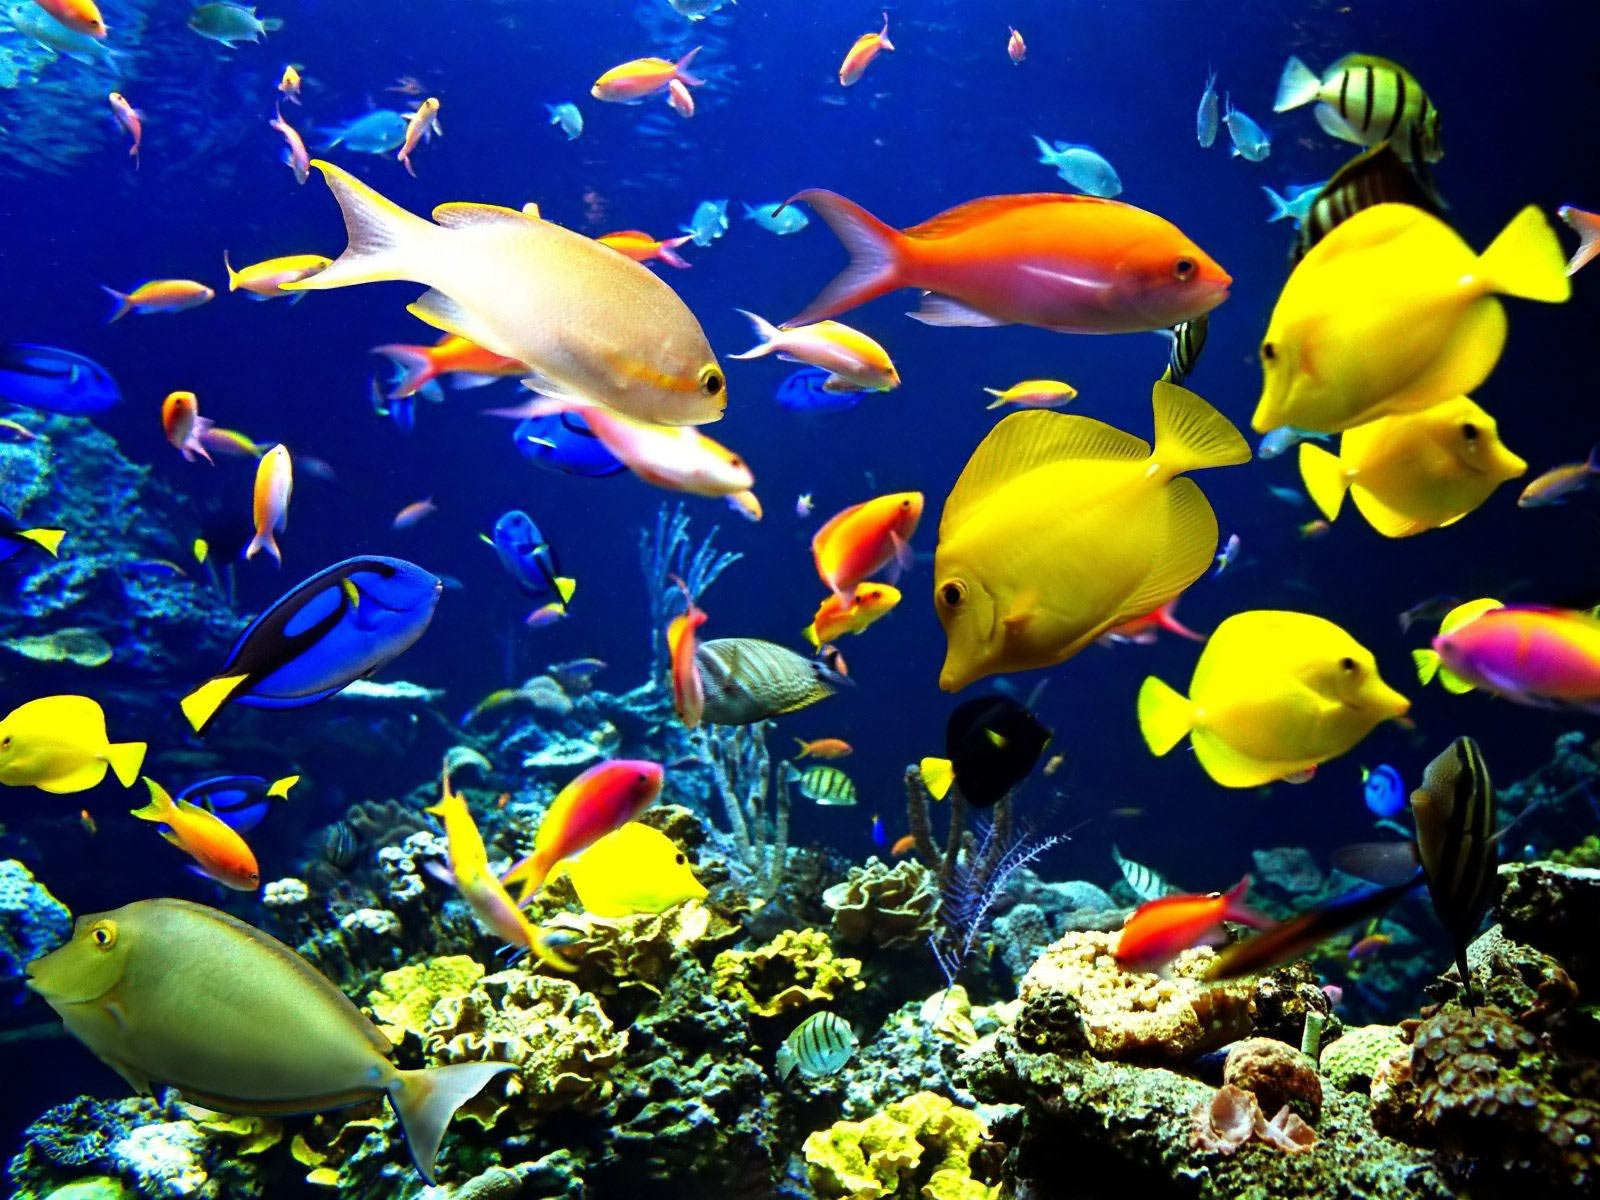 Category Animal Coral Reef Life Fish Desktop Wallpaper